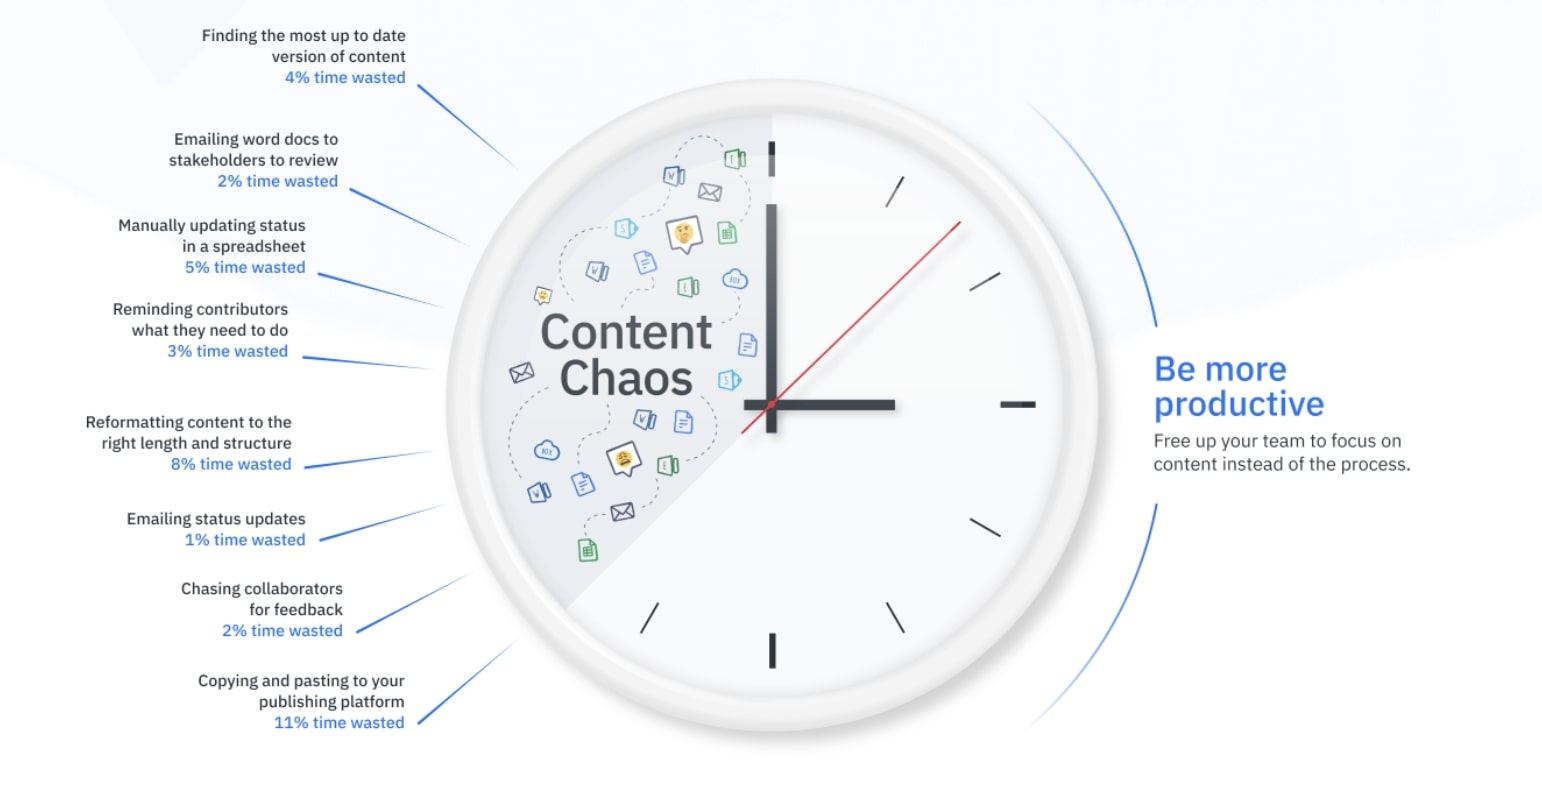 A clock visually representing how time can be wasted on content with the example reasons listed below the image.